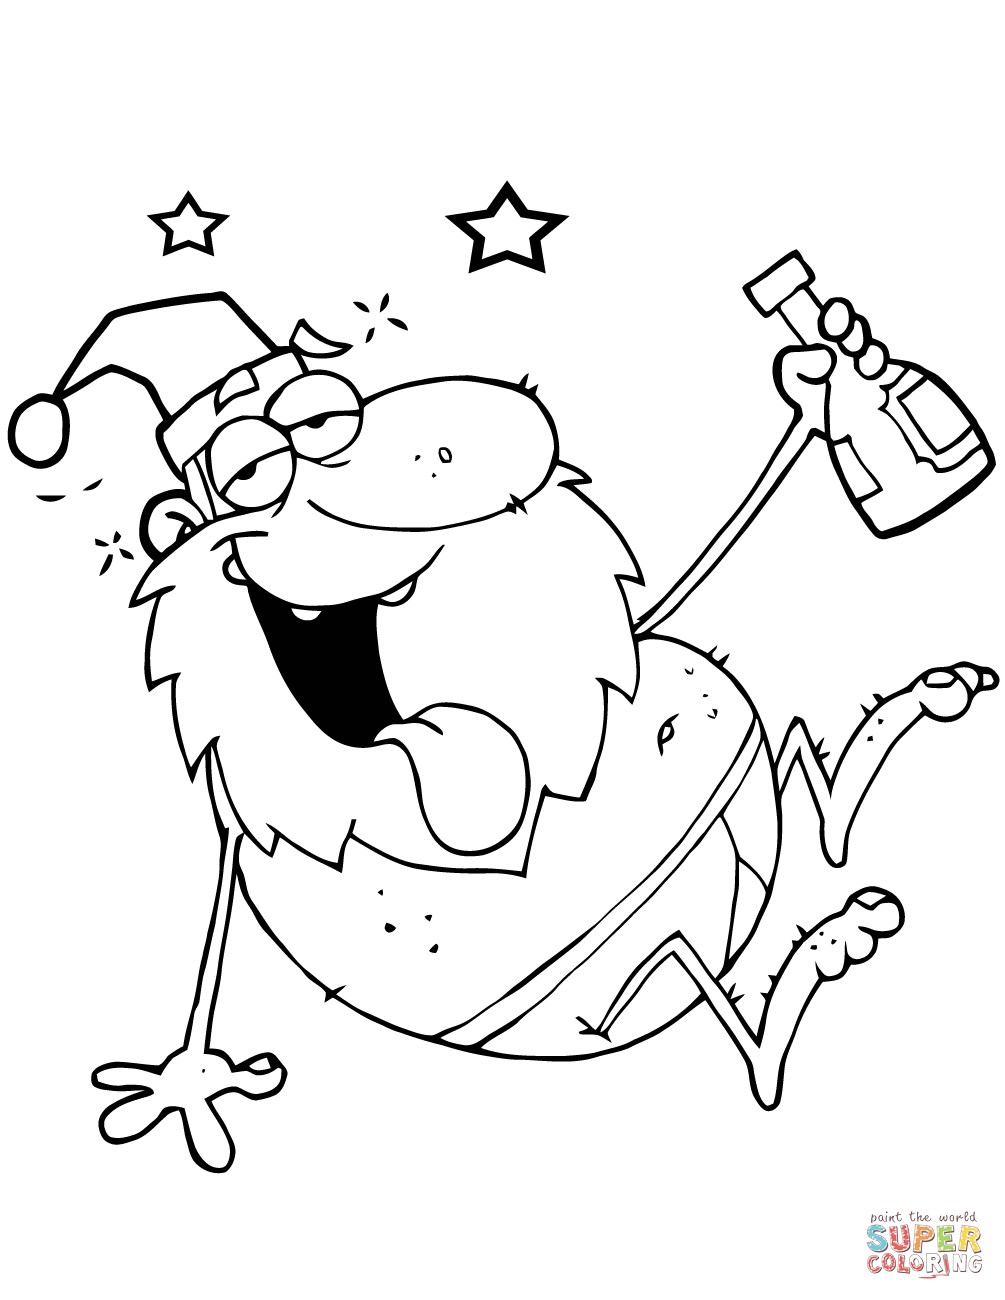 Drunk Santa Claus Coloring Page Free Printable Coloring Pages